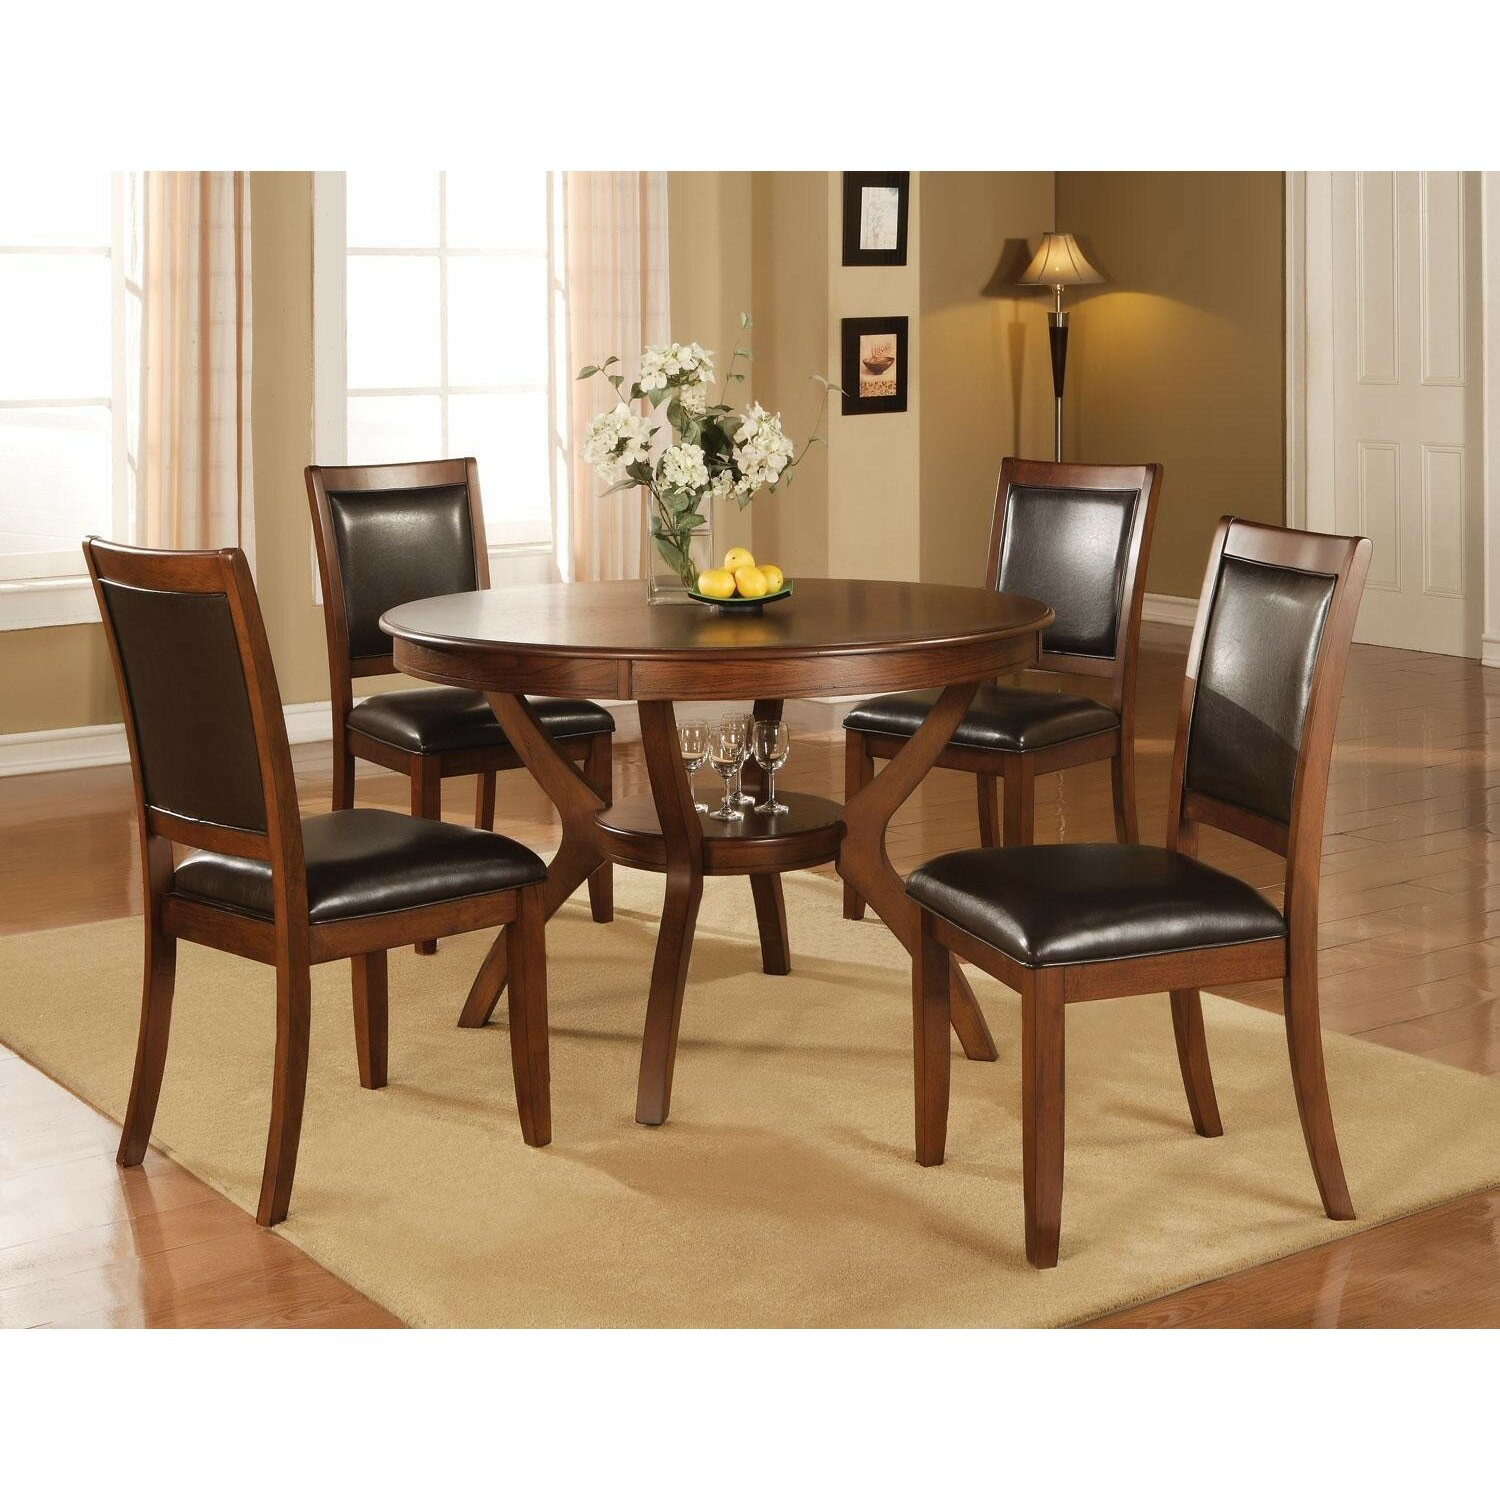 Infini furnishings 5 piece dining set reviews wayfair for 5 piece dining room sets